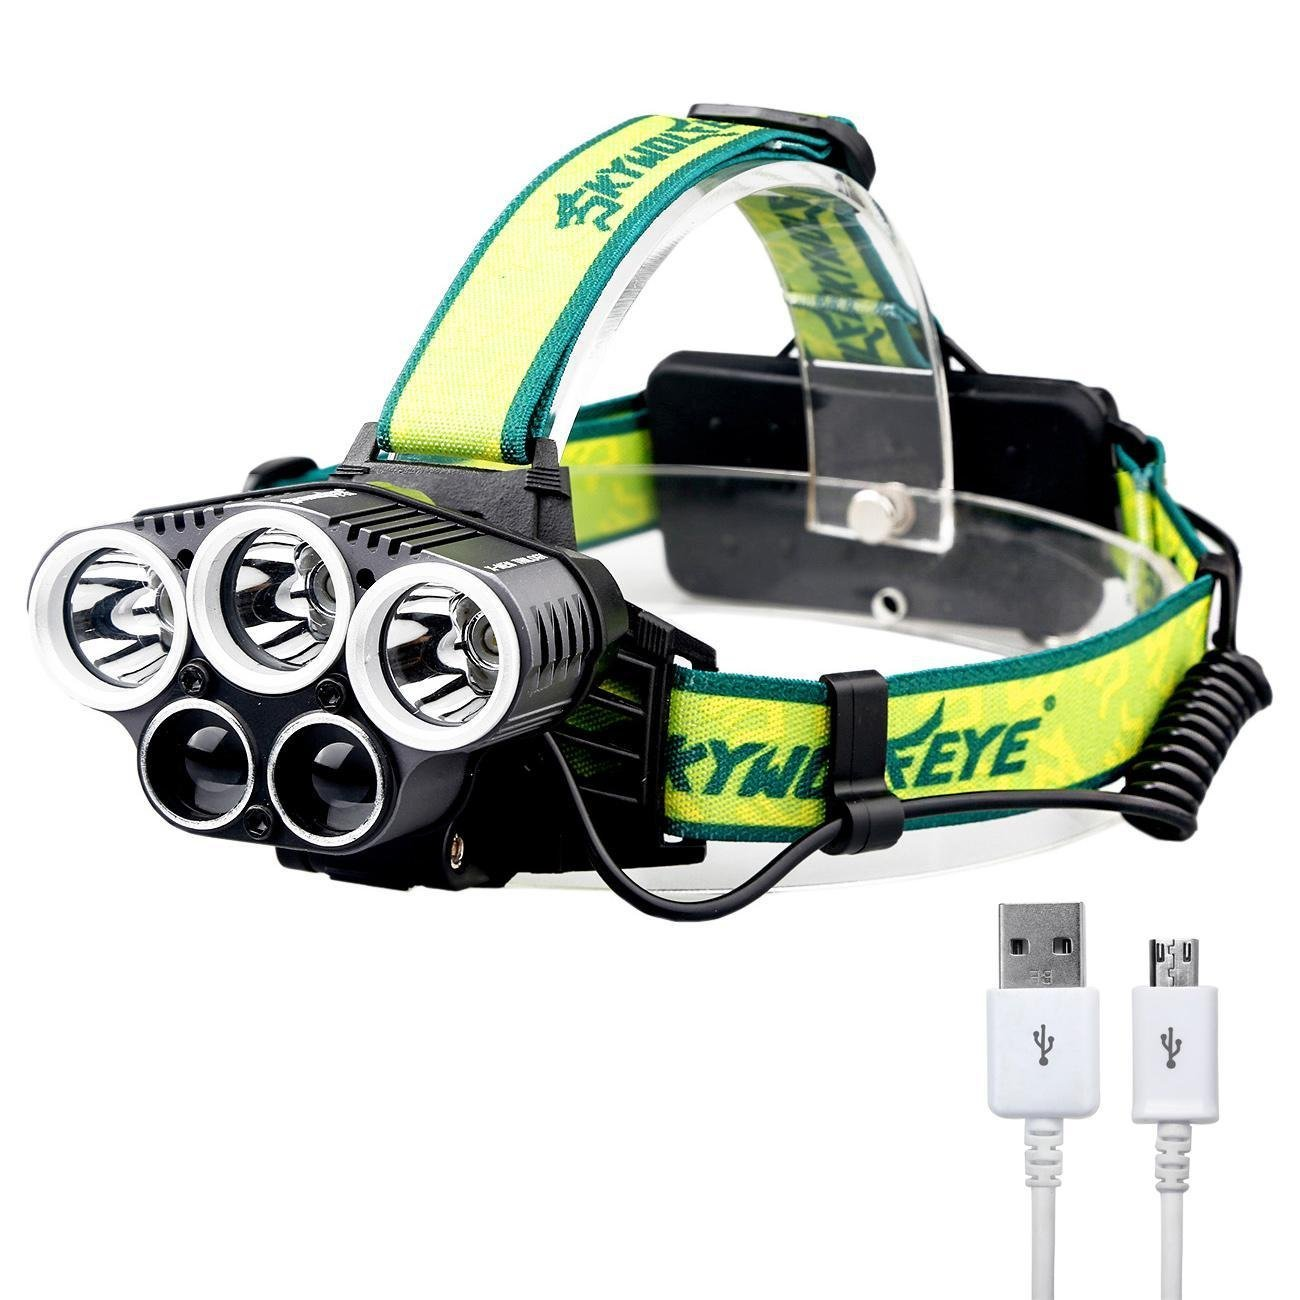 Rechargeable Headlamp,1500 Lumen Castnoo 5 Mode T6 LED Headlamp Flashlight with 5 White Led Light for Camping,2x18650 Batteries(Not Included)